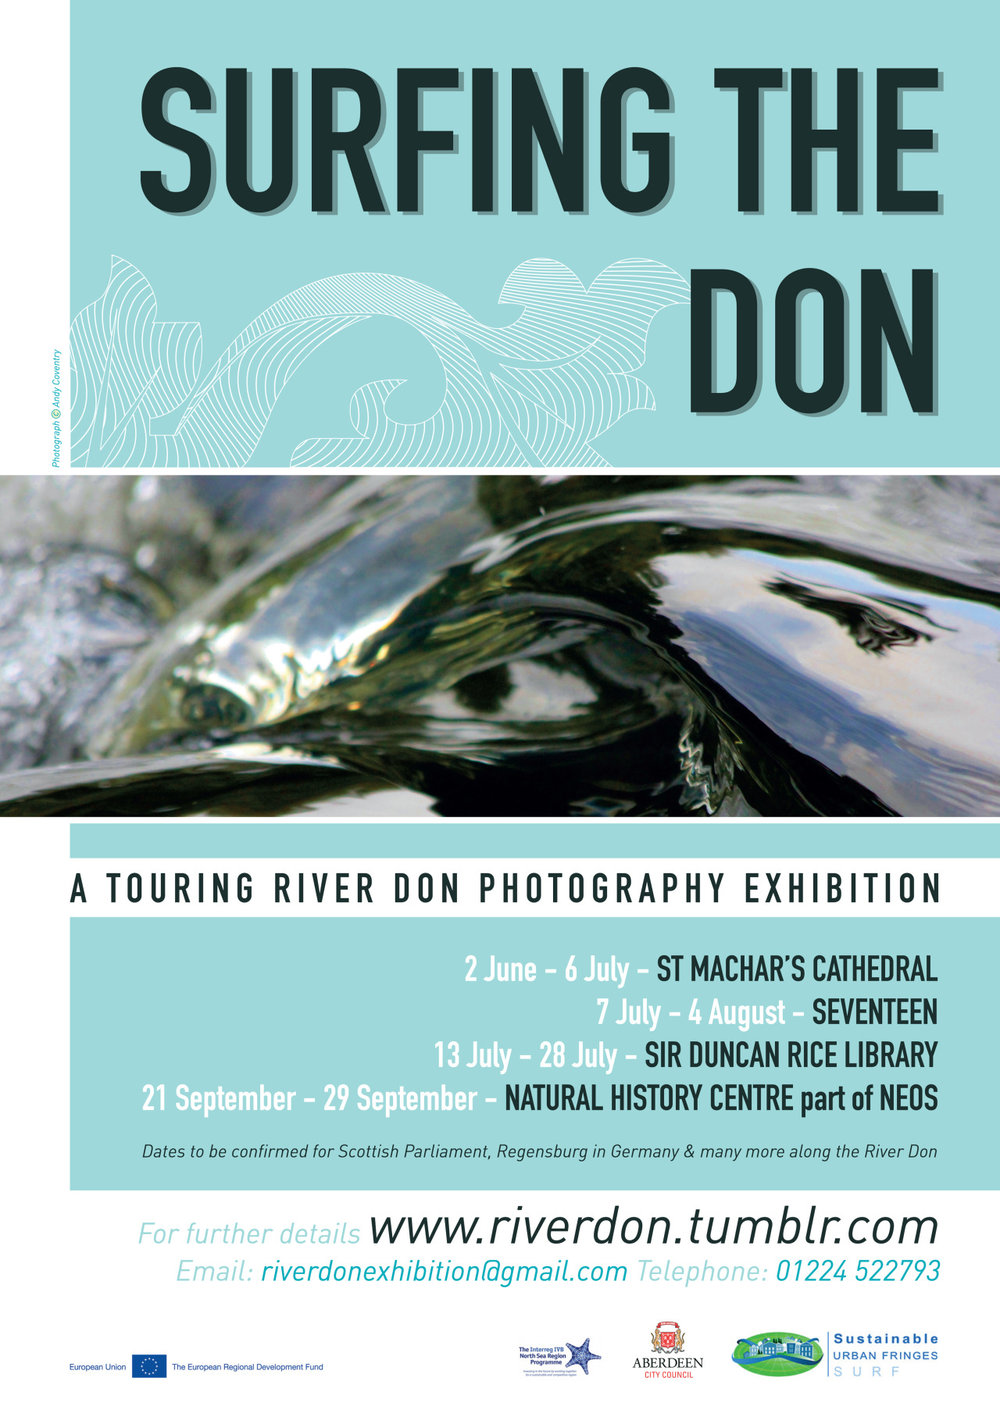 Lead artist, curator and project co-ordinator for 'Surfing the Don' working with Aberdeen City Council and community groups to bring together and tour a photography exhibition celebrating Aberdeen's River Don. Extensive community participation, supporting contibuting photographer, arranging TV and press interviews, producing a publication, budget management, liaising with funders, securing exhibition venues and fundraising.